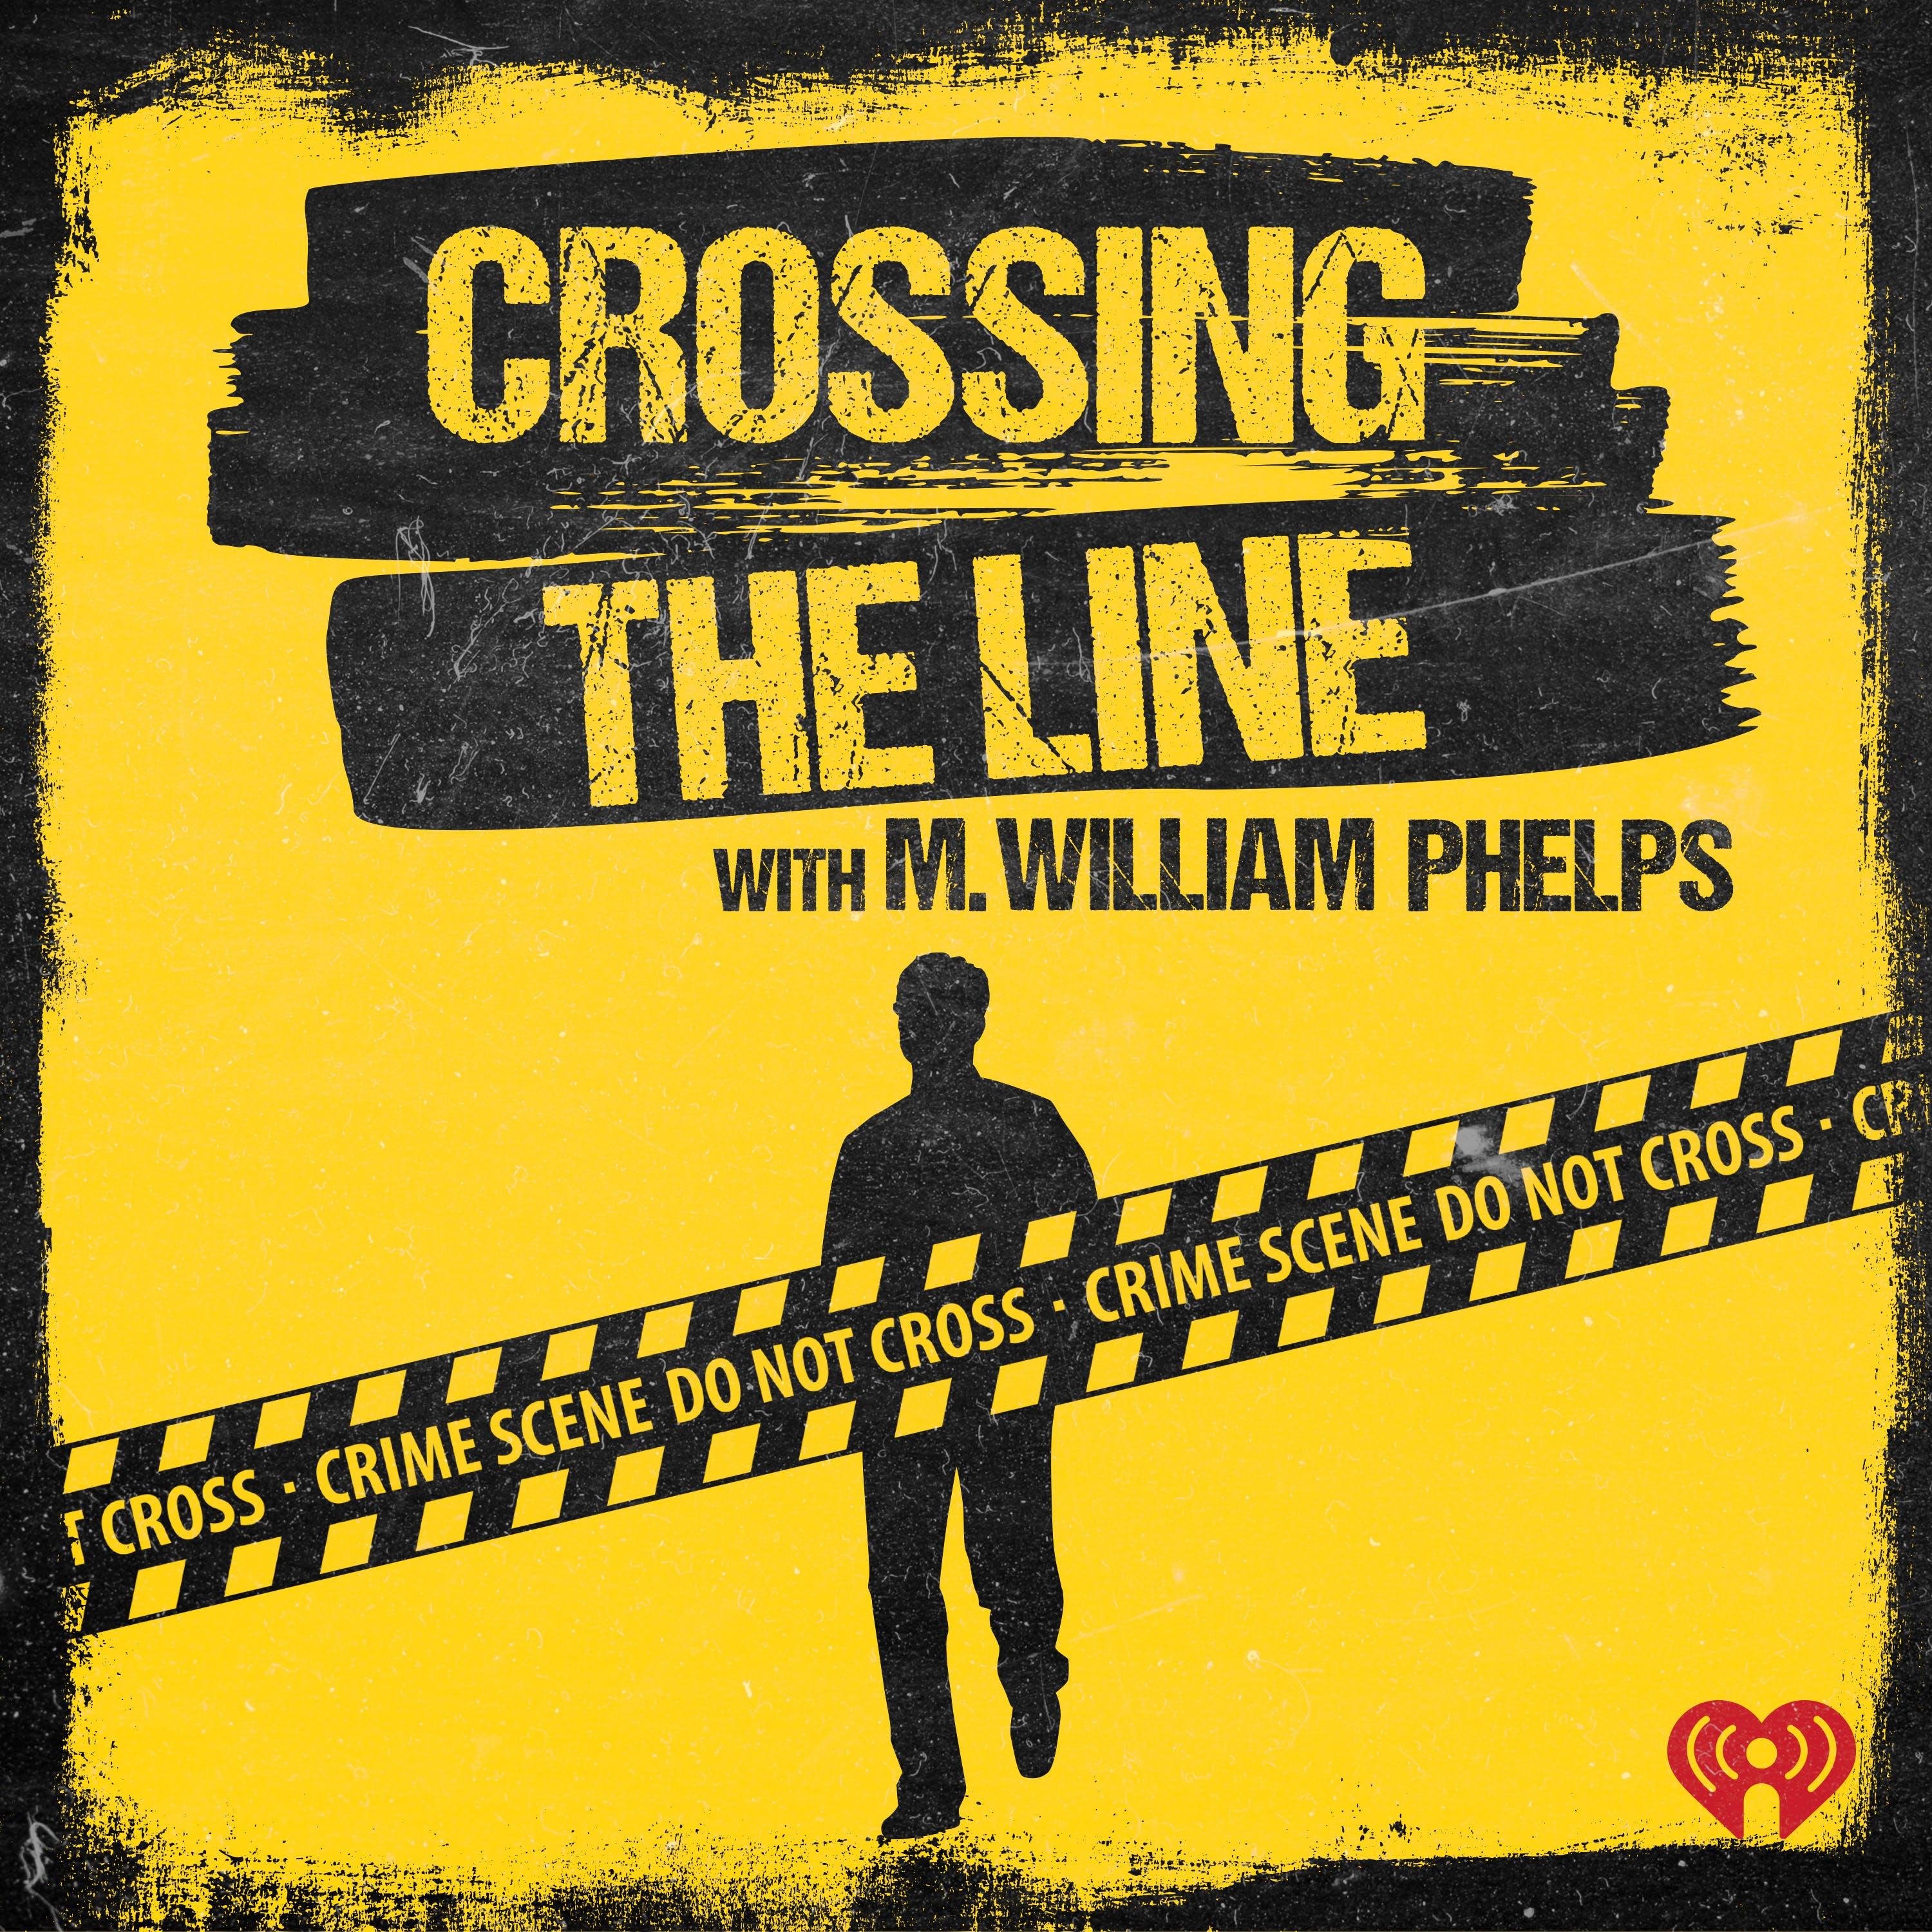 Introducing: Crossing the Line with M. William Phelps